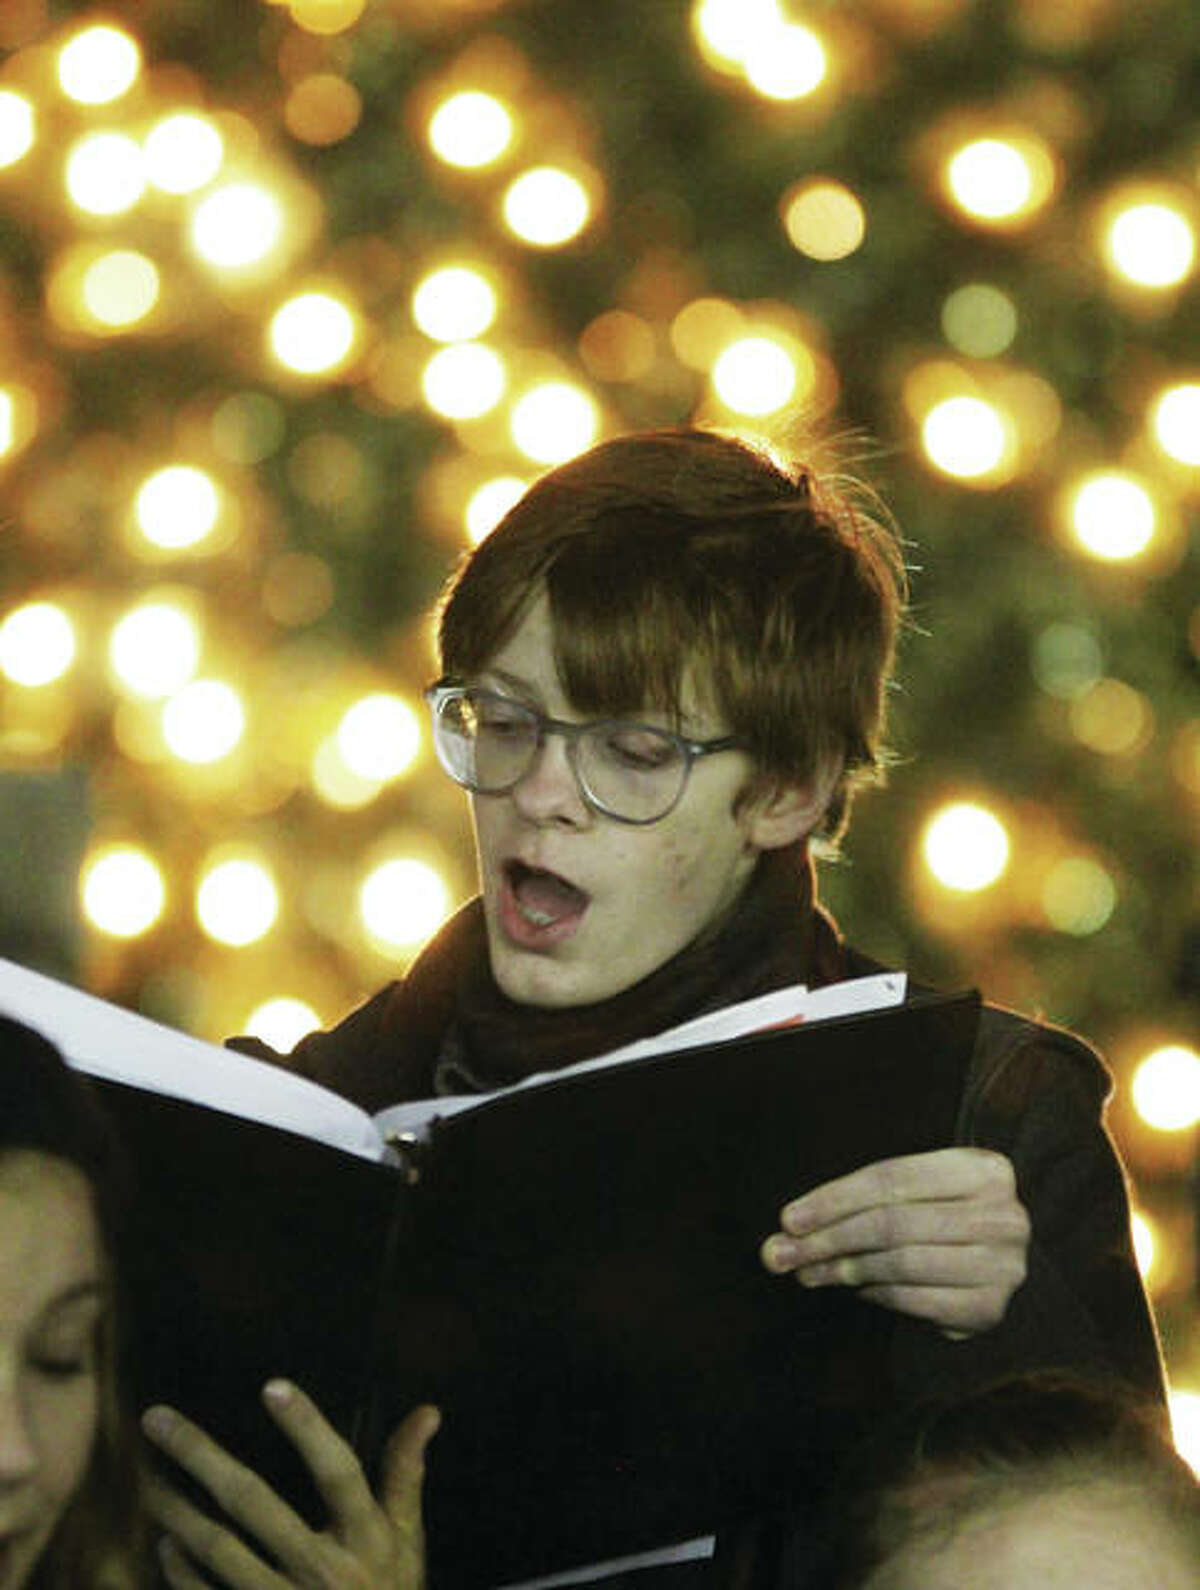 Austin Turnbull, a member of the Alton High School Chamber Singers, sings Christmas carols during the 23rd annual Christmas Tree Lighting in Lincoln-Douglas Square in downtown Alton. The ceremony drew about 250 people, and is sponsored by Alton Main Street.